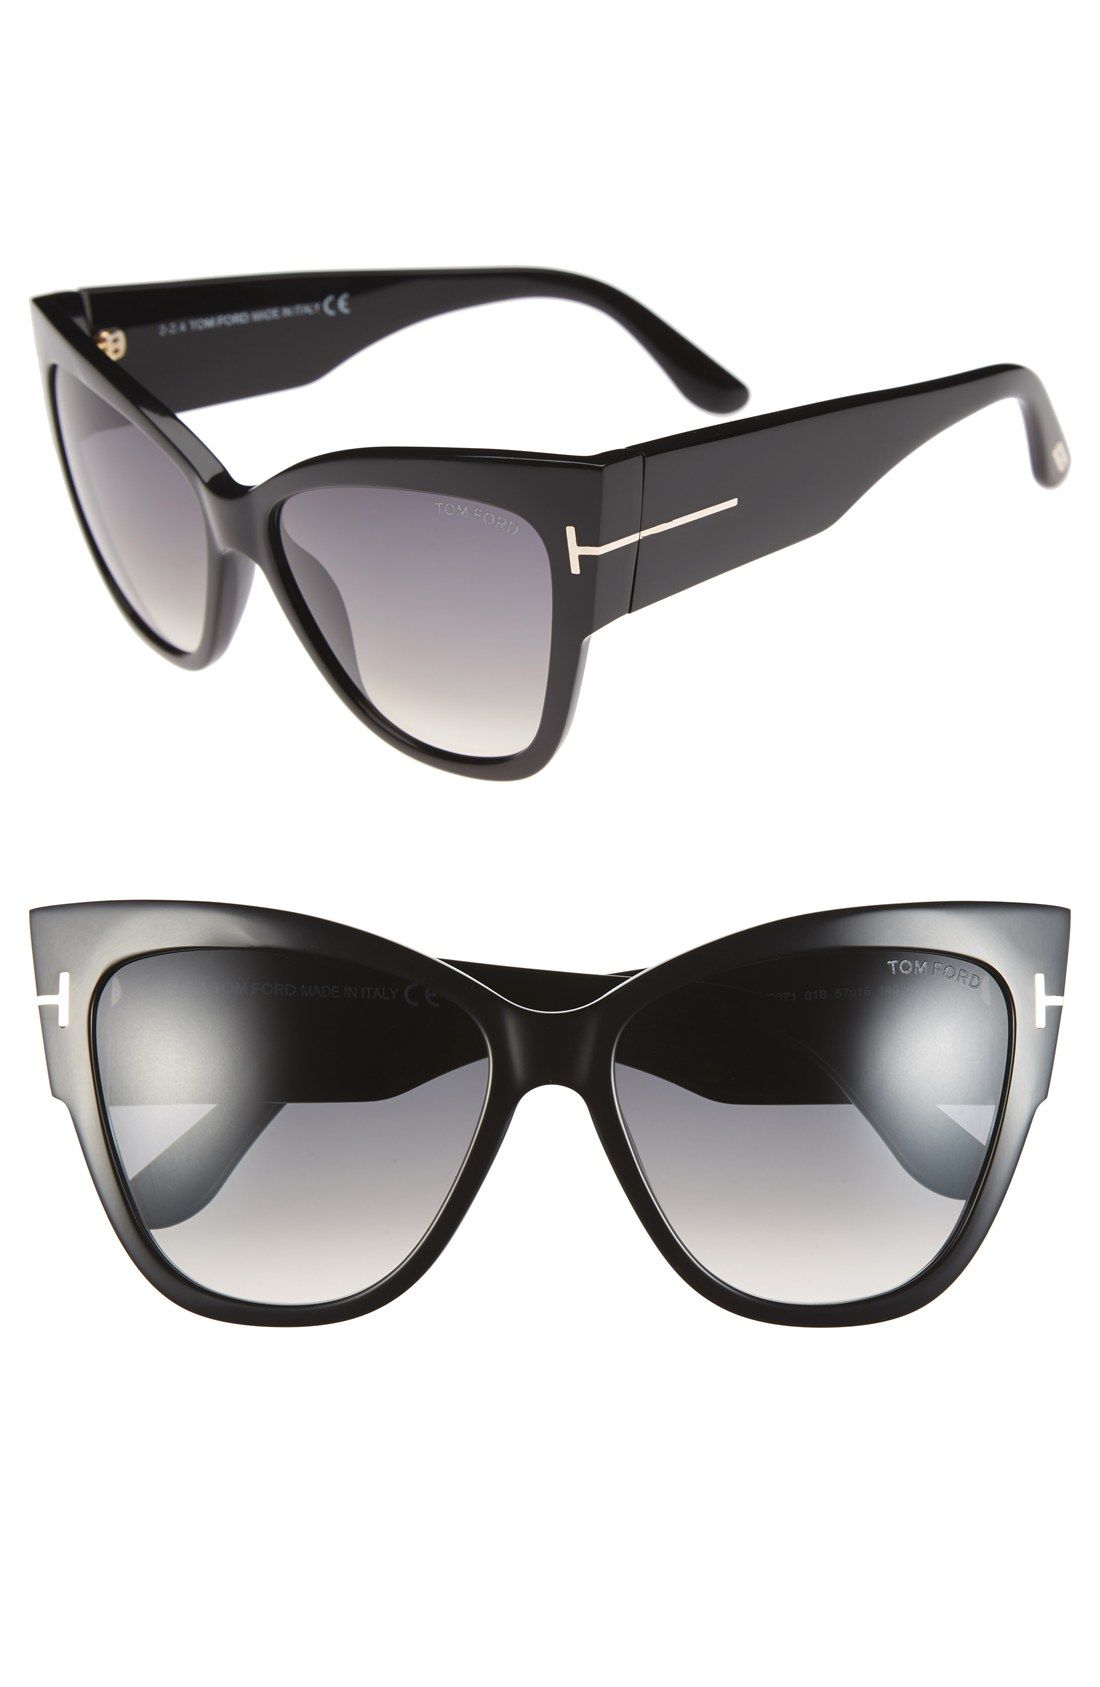 Sunglasses On Sale in Outlet, Black, 2017, one size Tom Ford